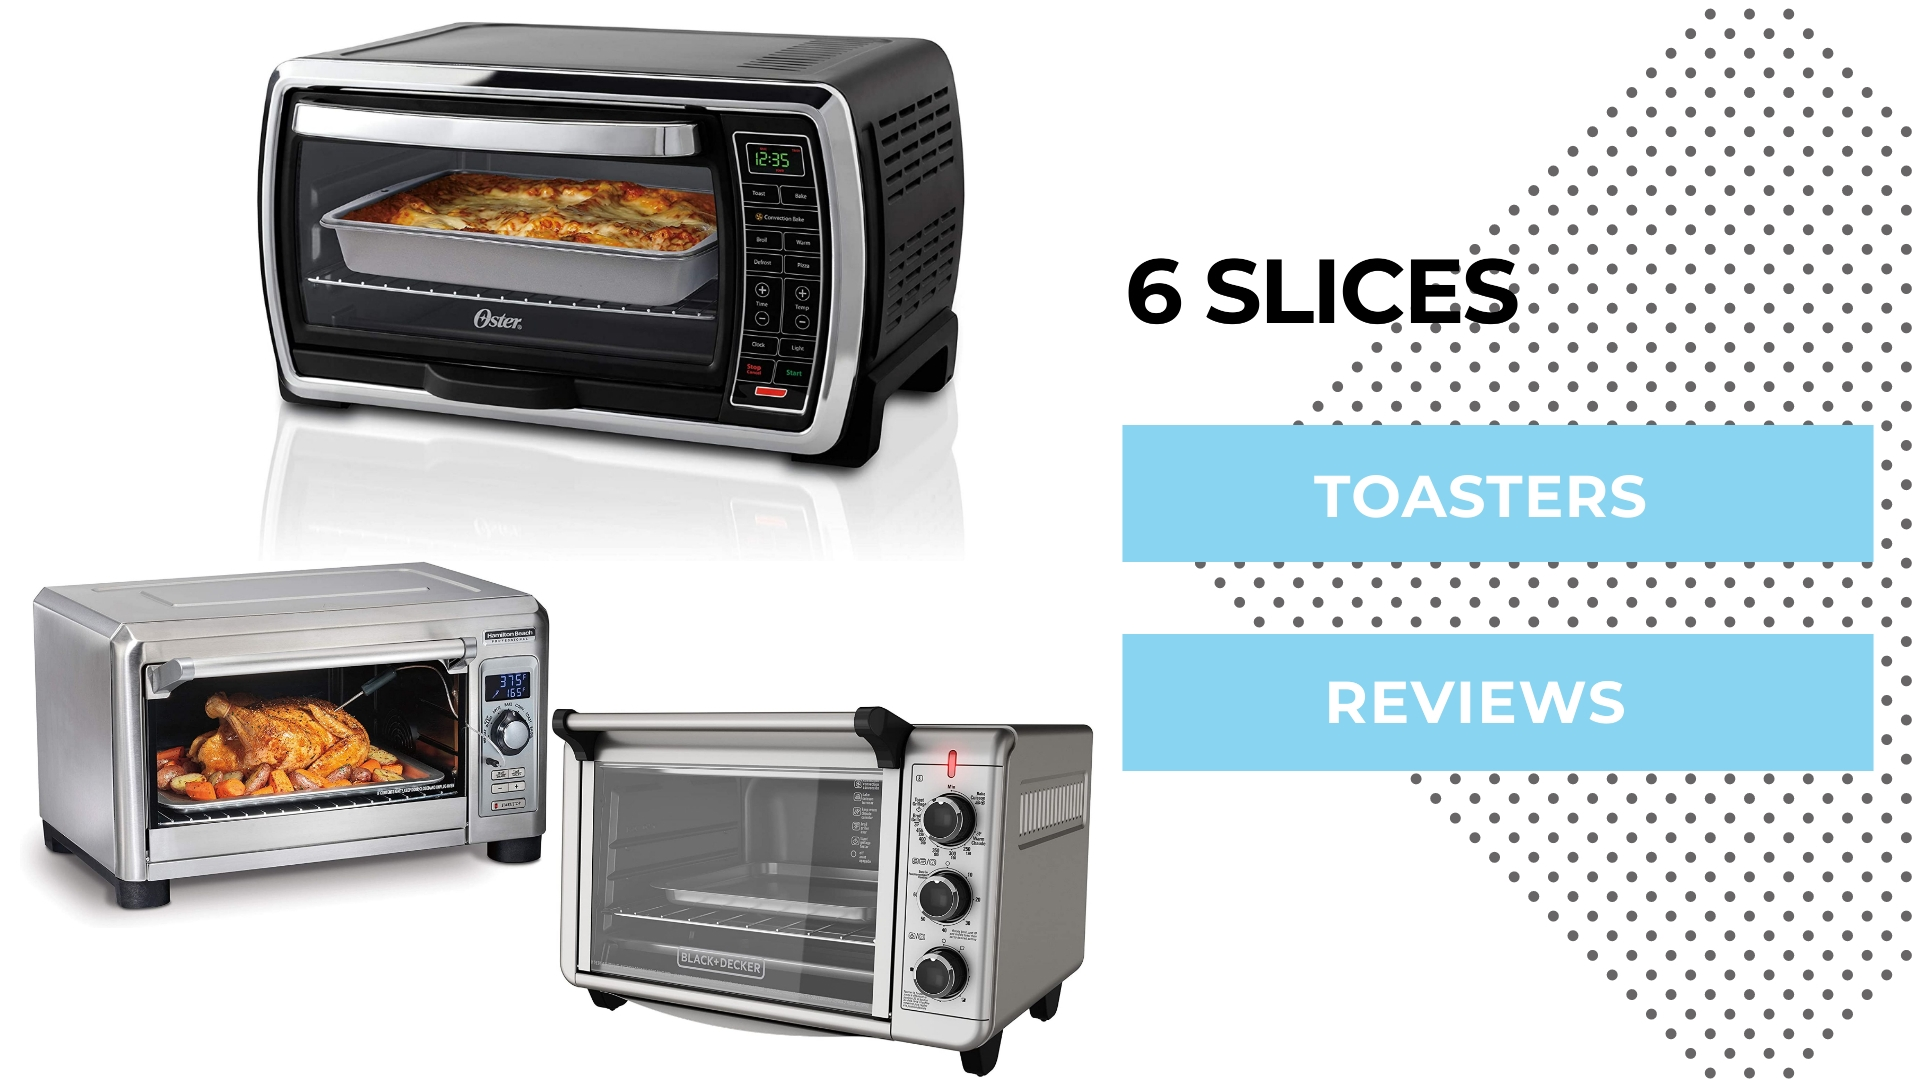 6 Slices Toasters Reviews